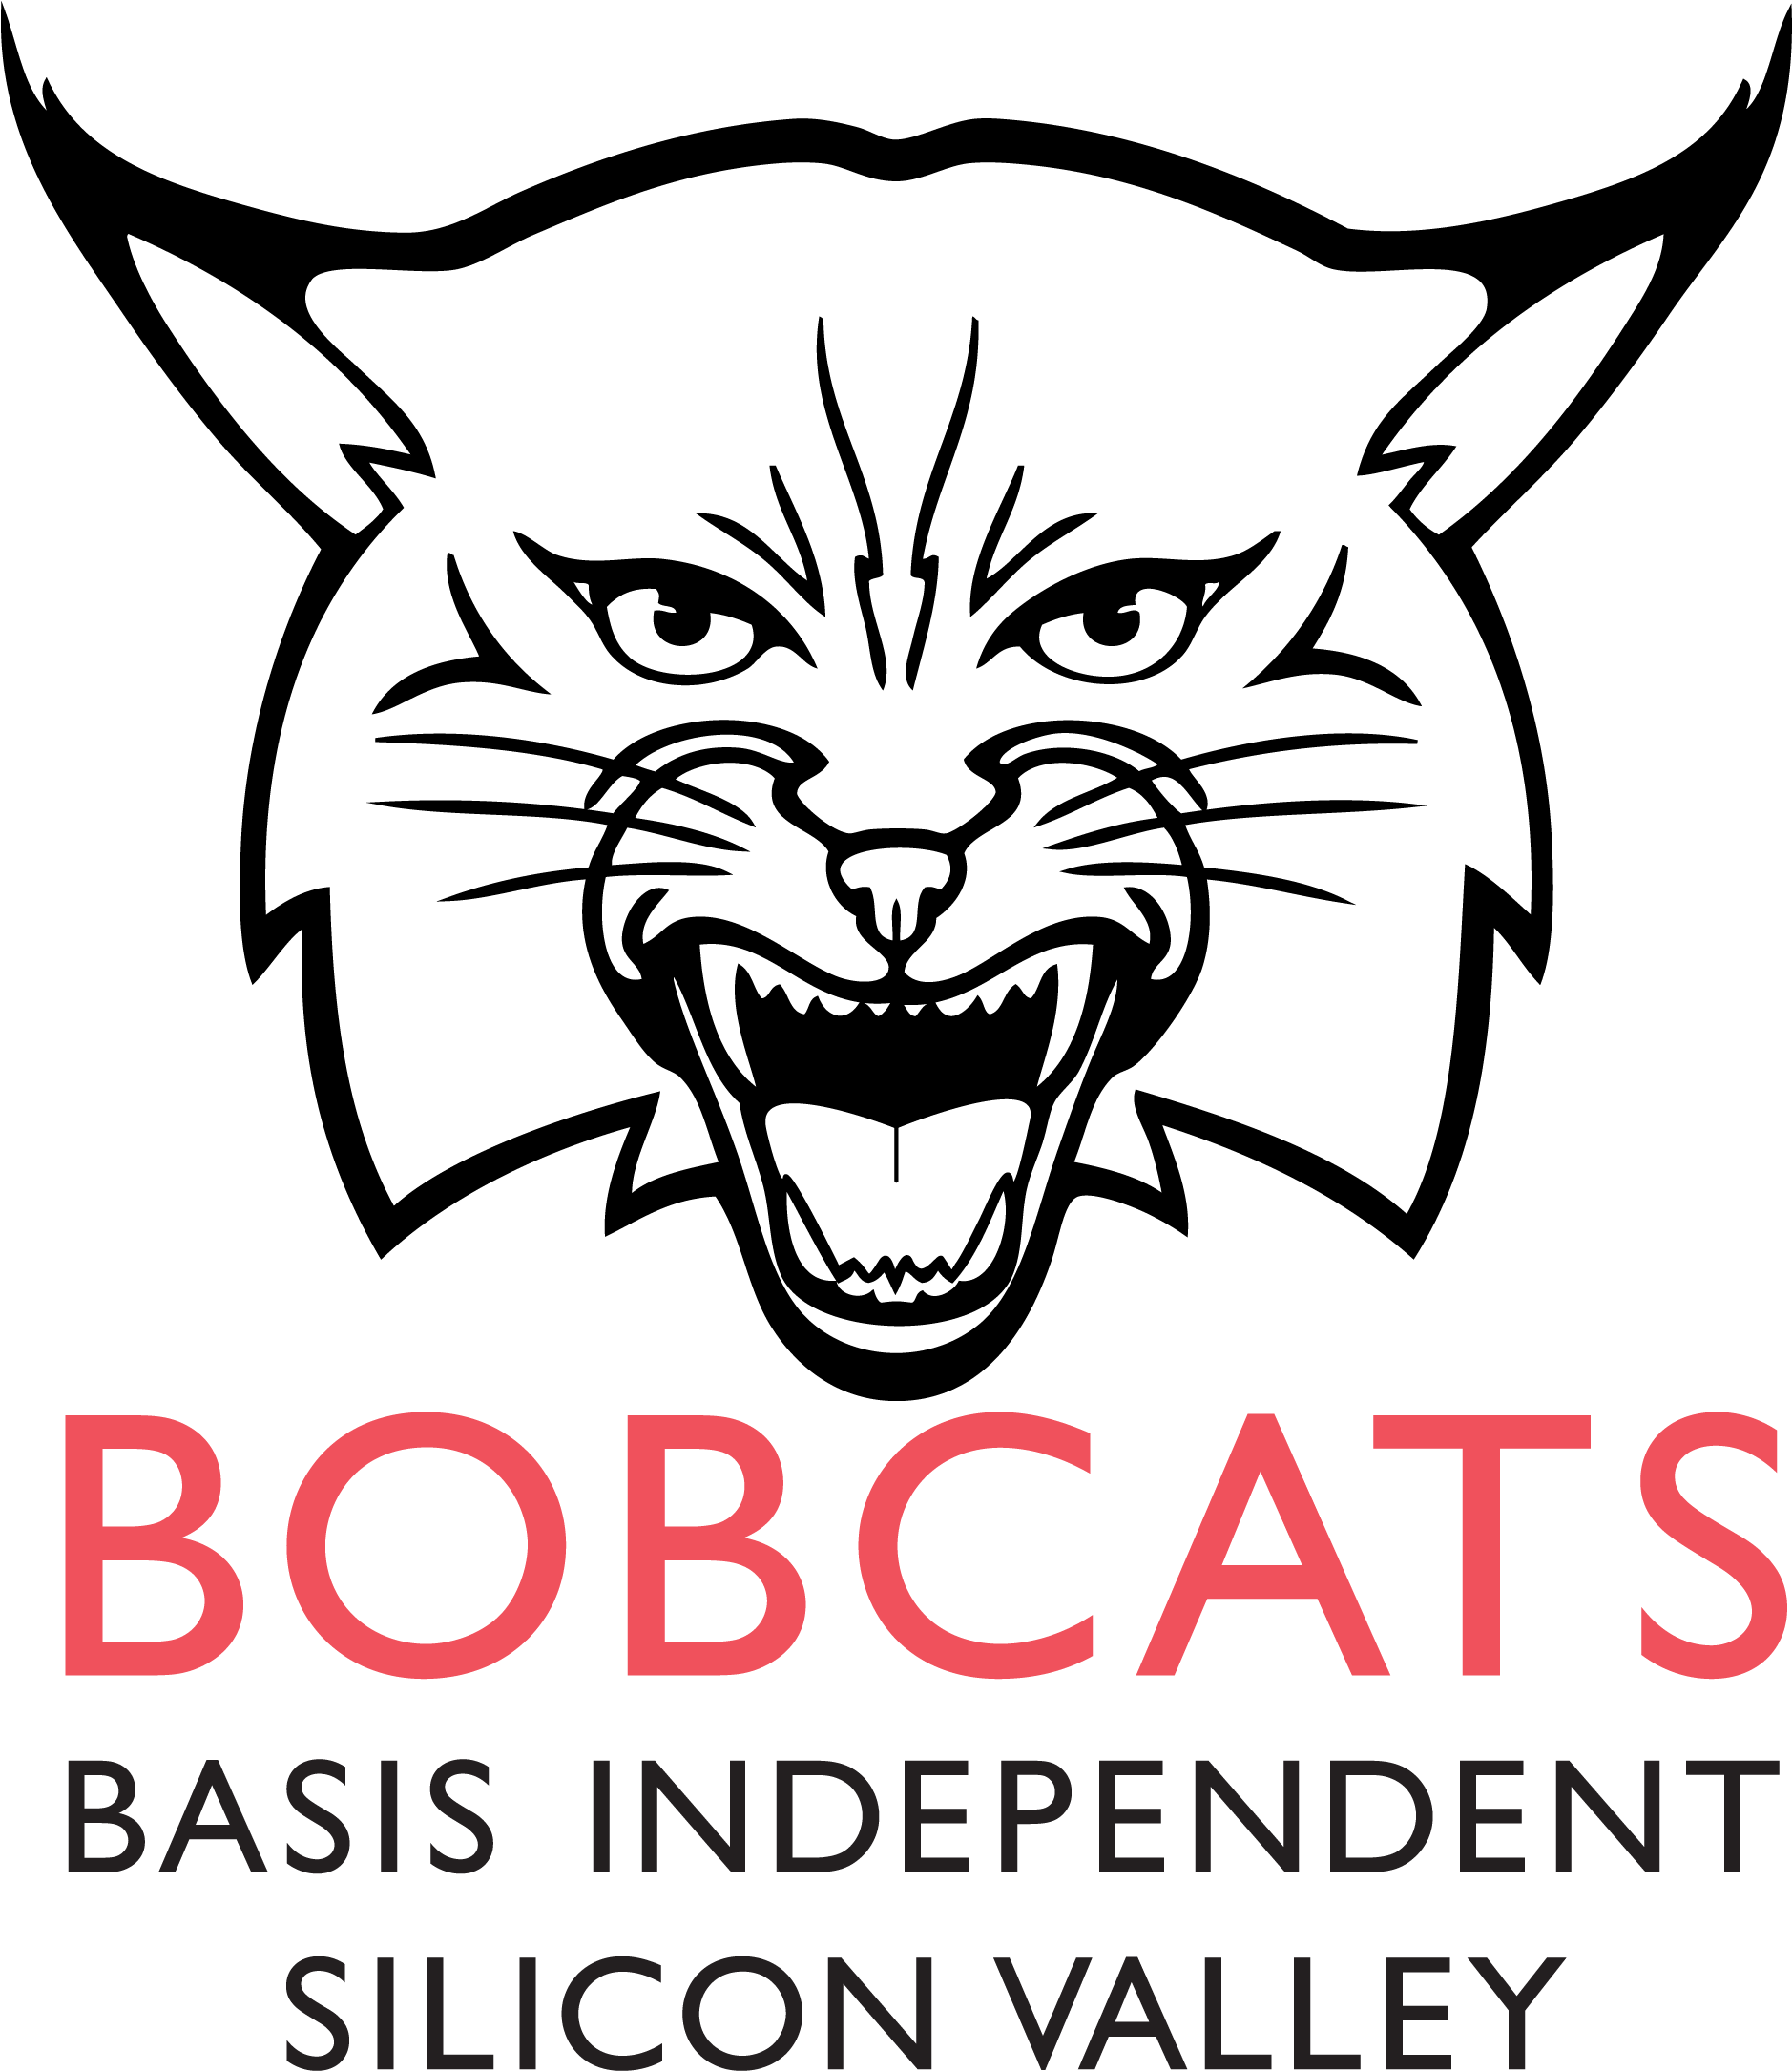 BASIS Independent Silicon Valley